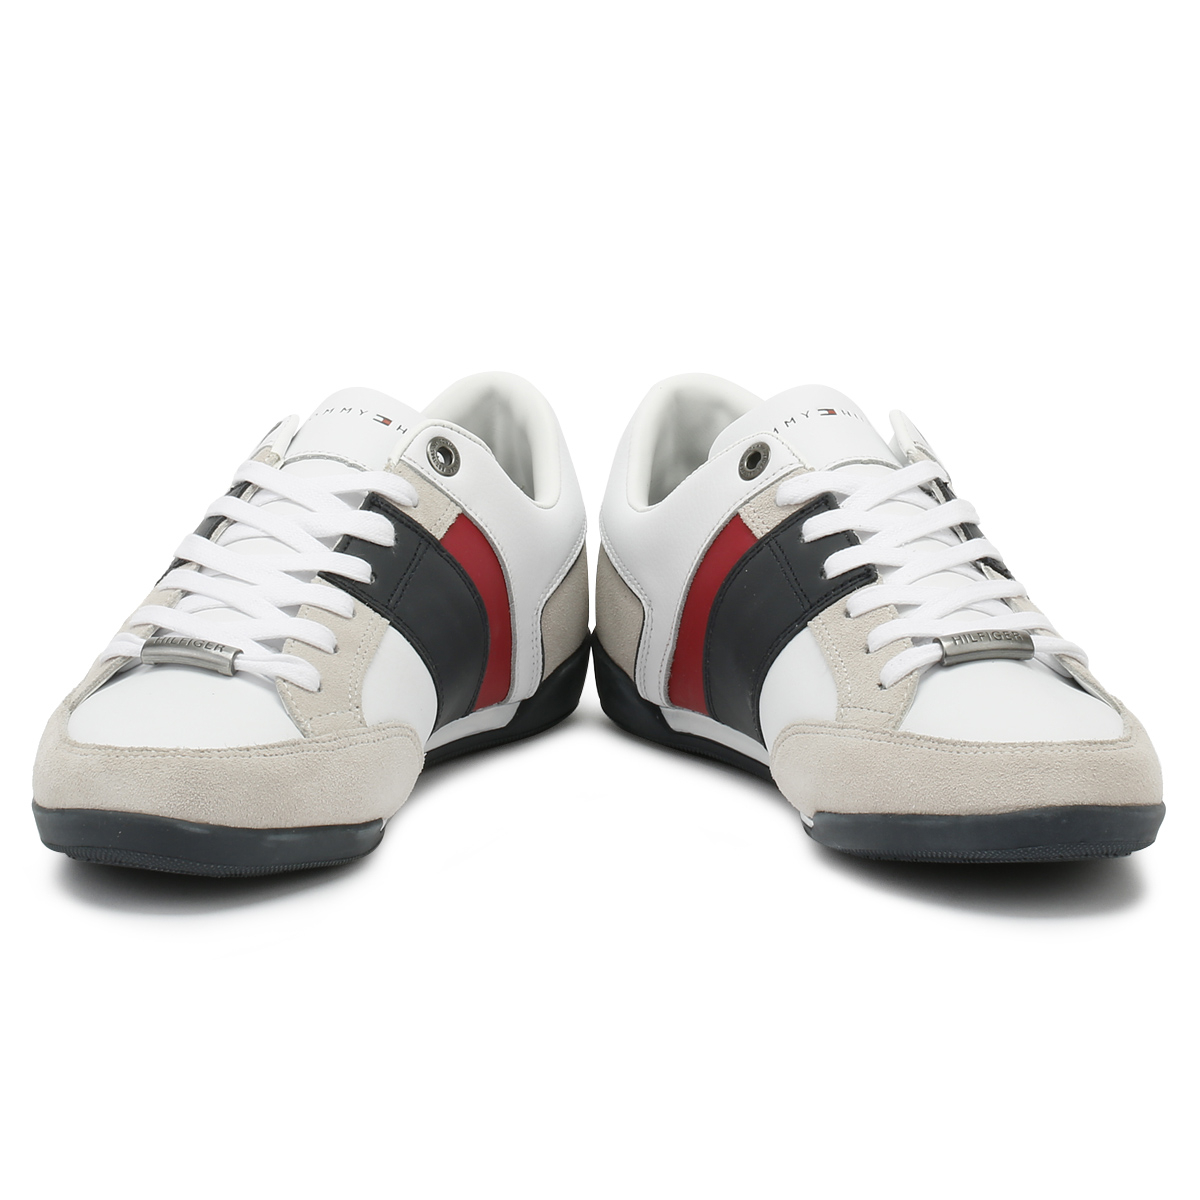 Tommy Corporate Hilfiger  Uomo Trainers WEISS Corporate Tommy Cupsole Sport Casual Schuhes 451189